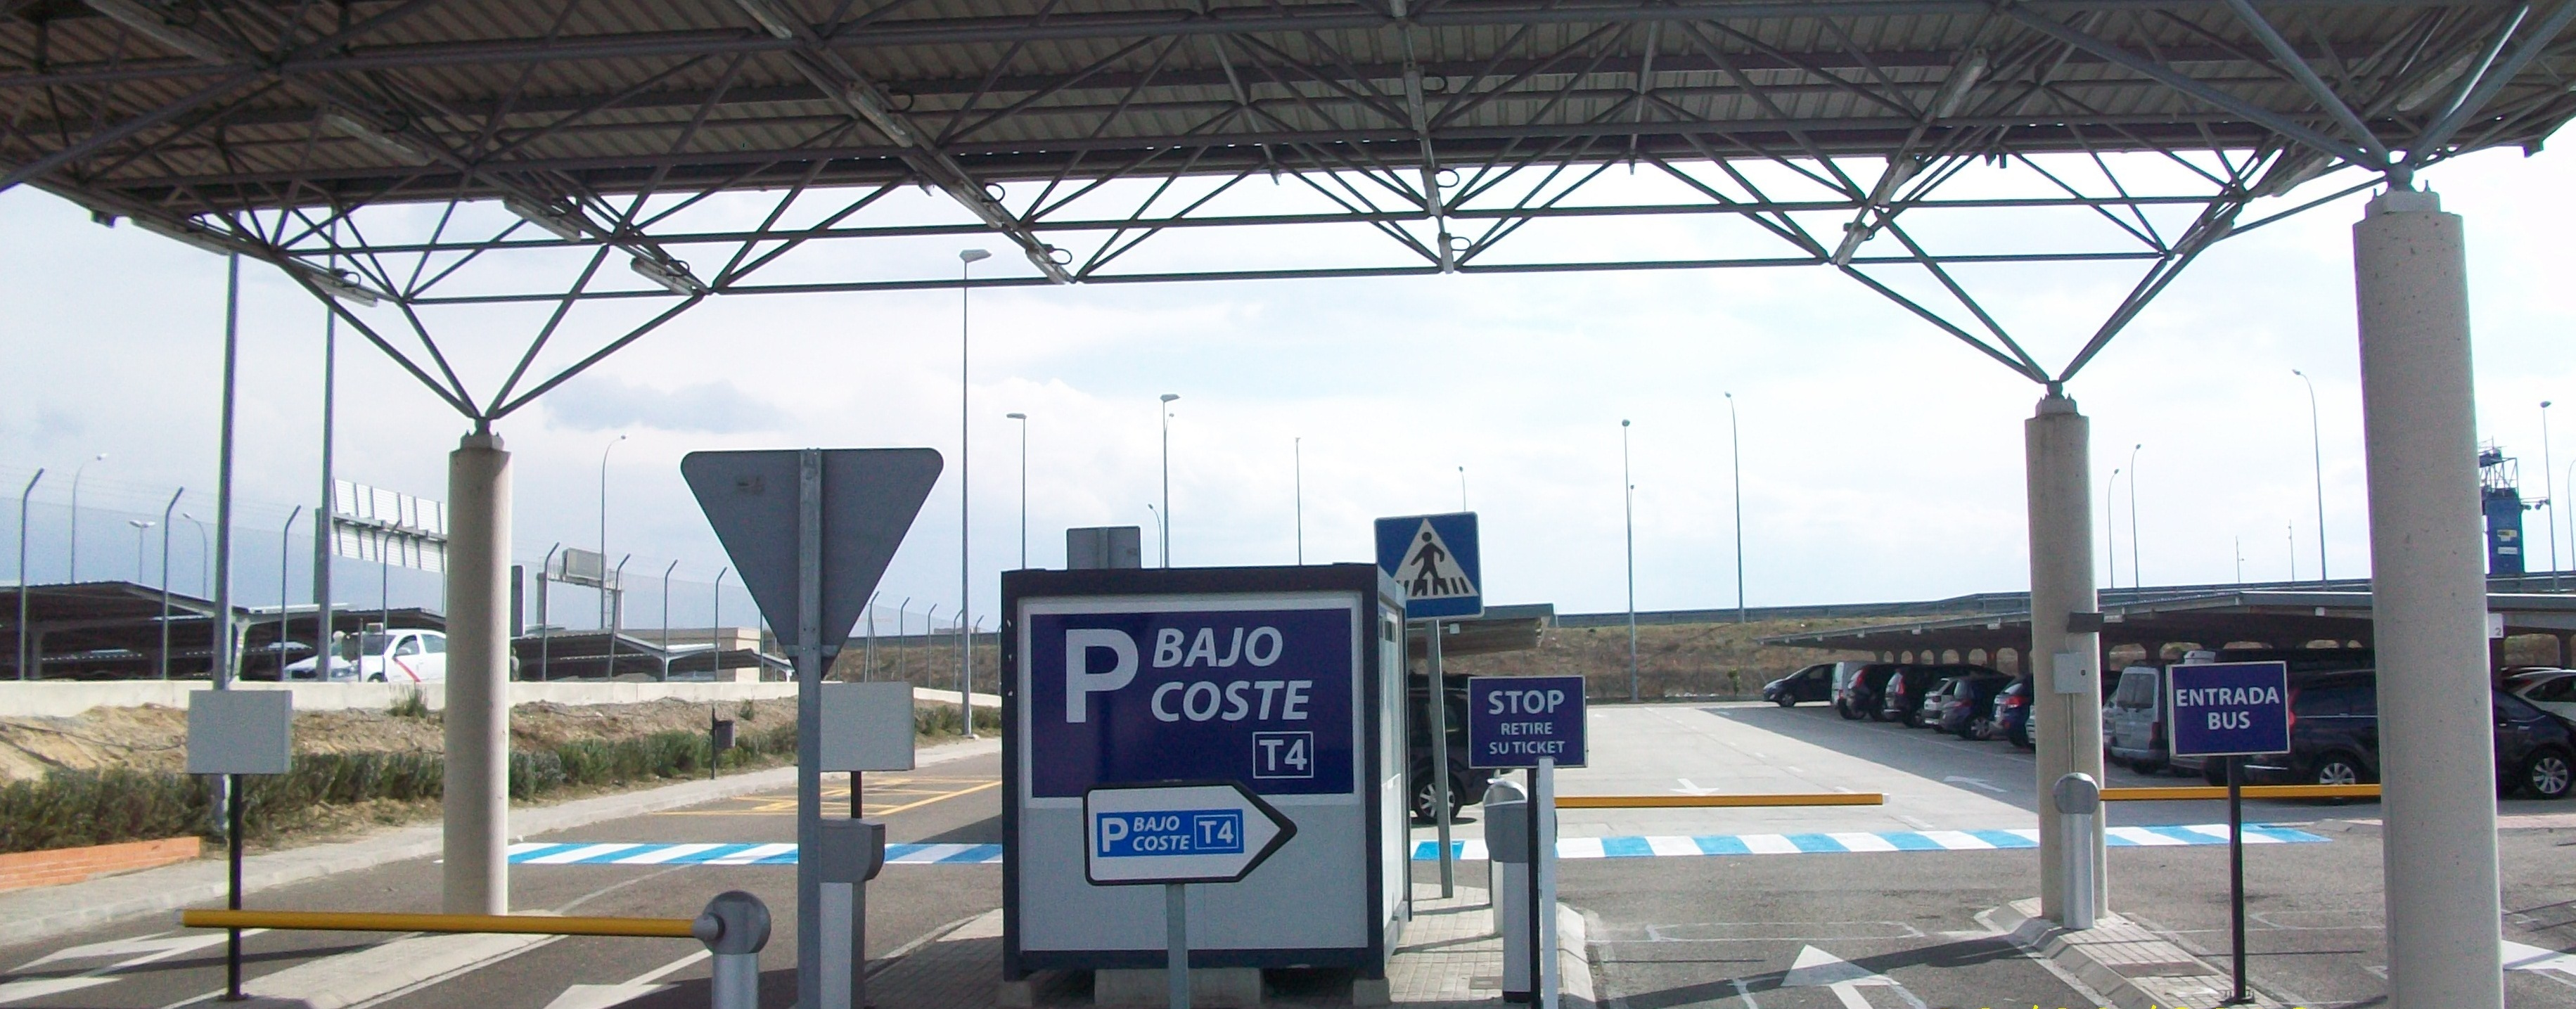 Parking Aeropuerto Barajas Bajo Coste T4